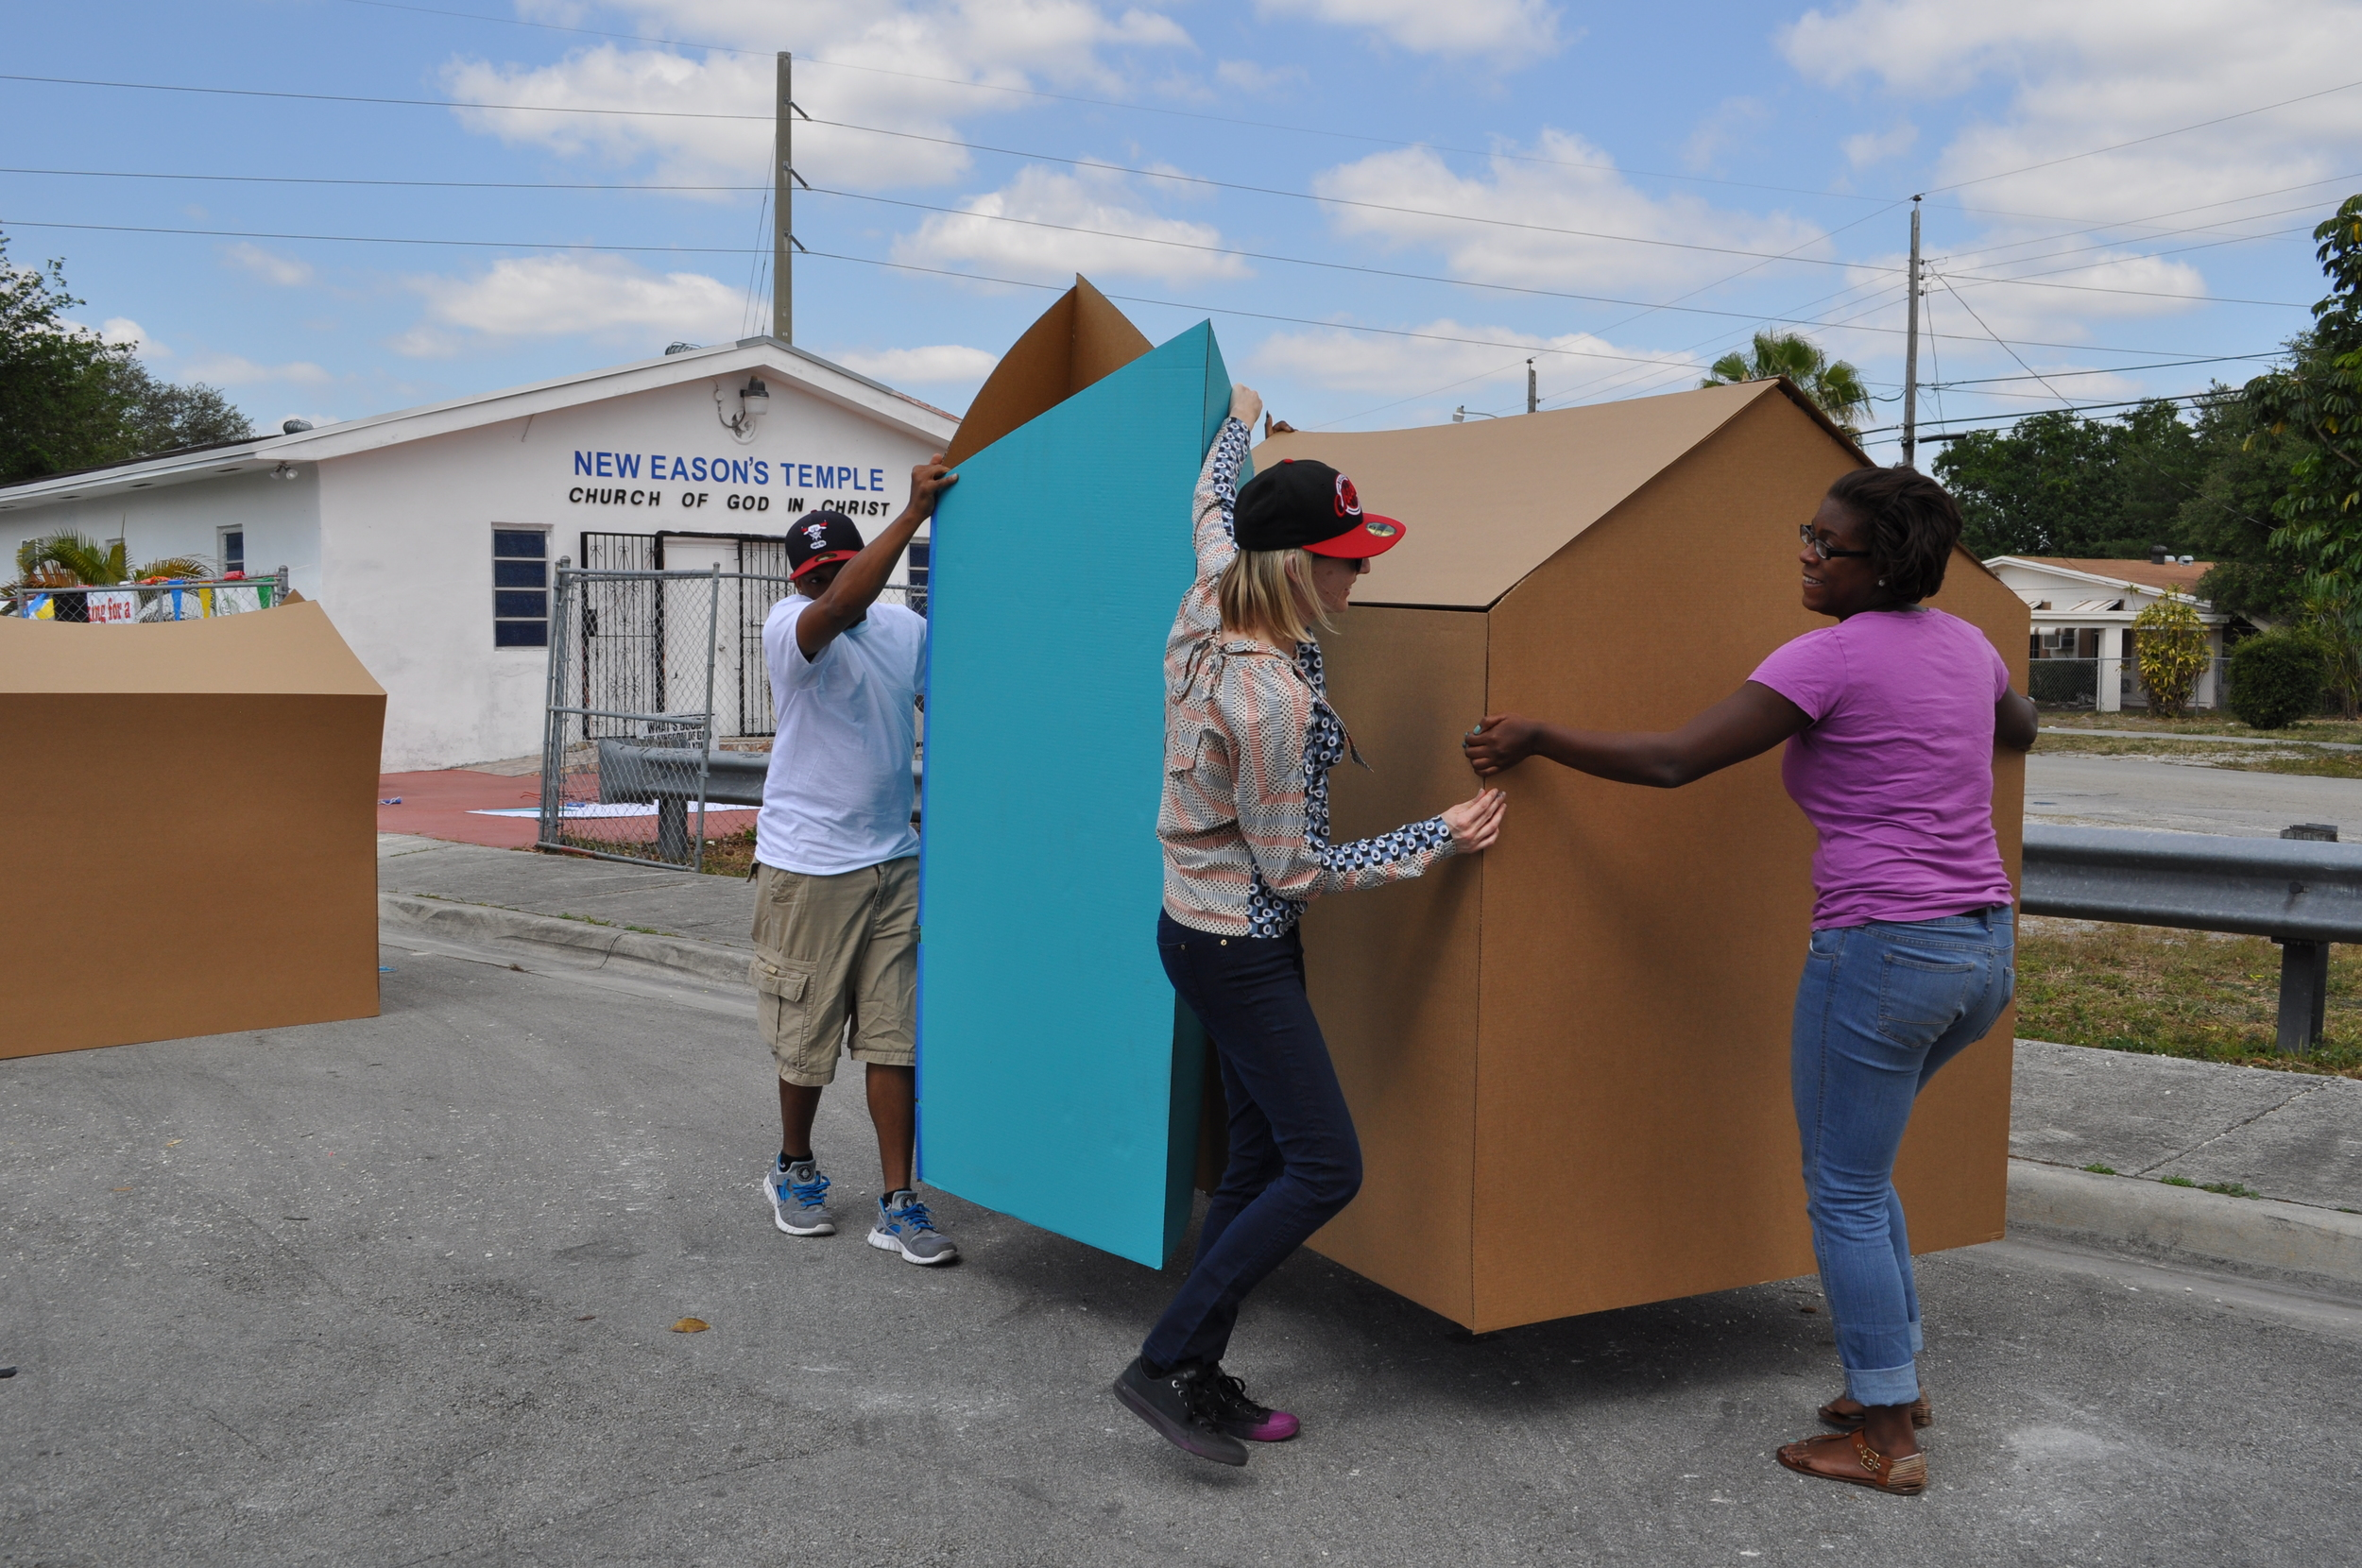 Setting up the Micro-Enterprise structures before the Pop-Up Park begins.